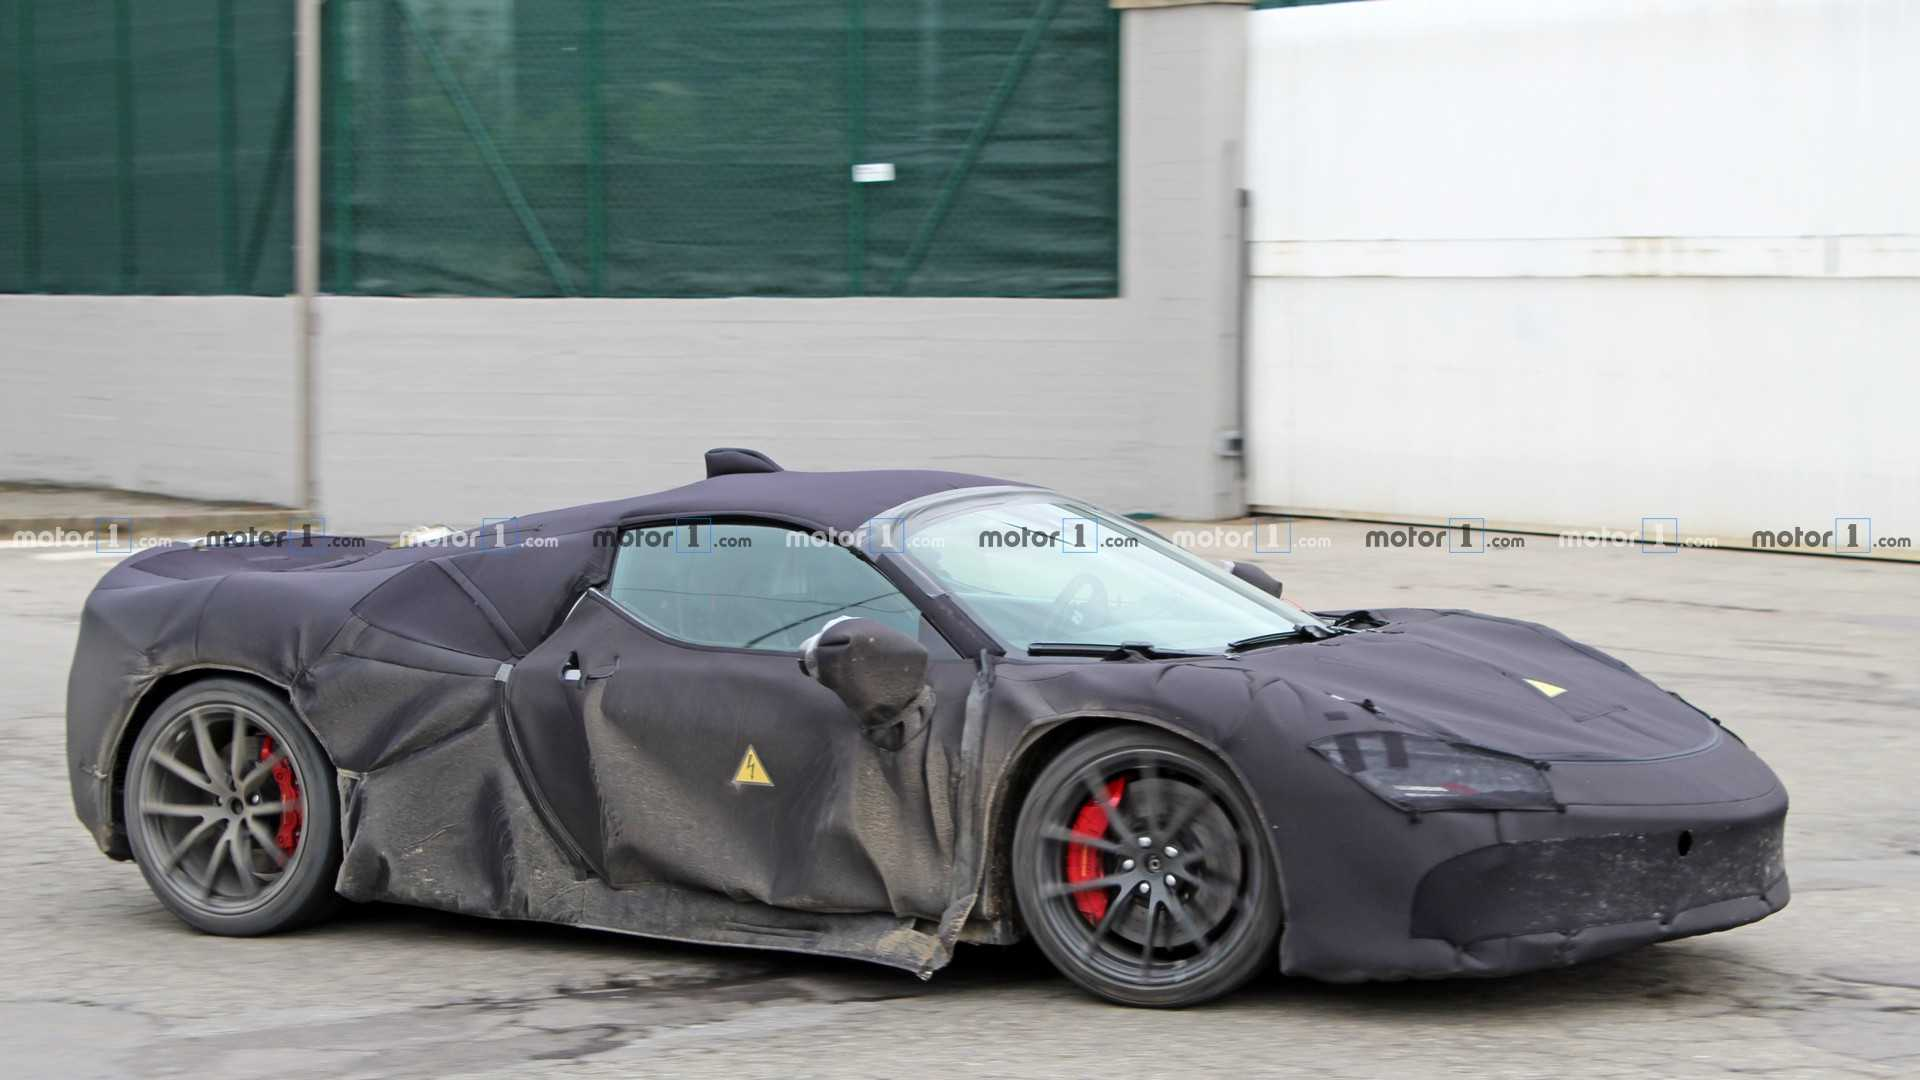 Ferrari Hybrid Supercar Spotted Up Close Wearing Heavy Camo